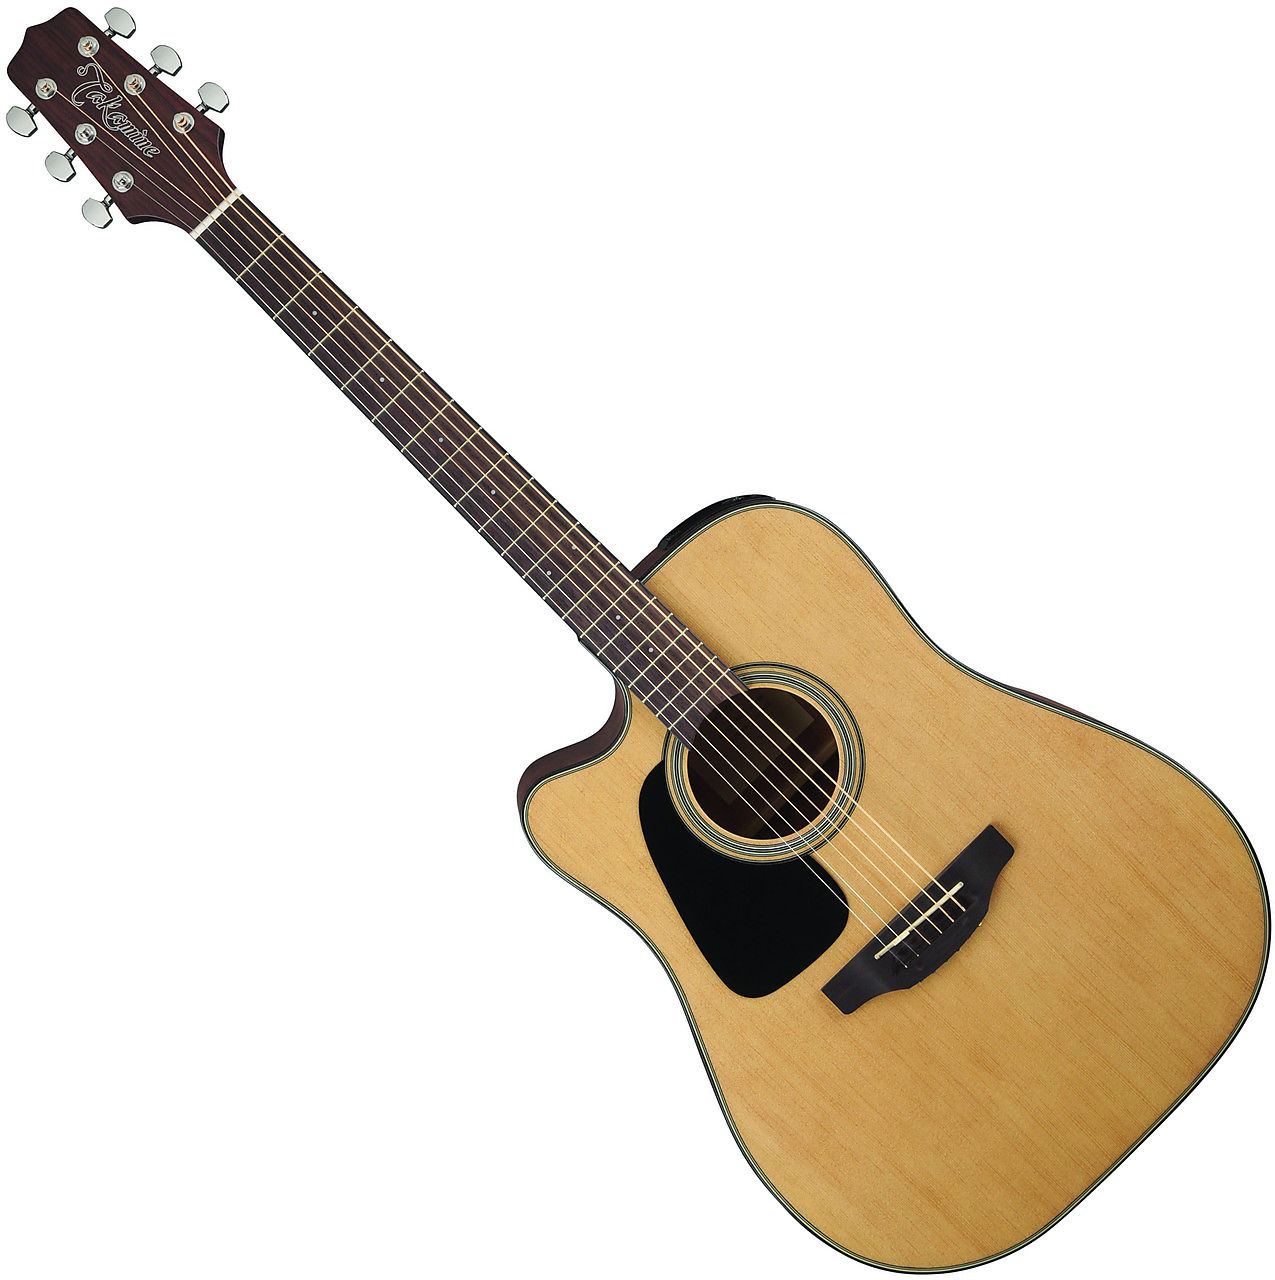 GD10CE-LH Left-Handed Acoustic/Electric Guitar The GD10CE is a great-looking acoustic/electric dreadnought guitar that provides big acoustic sound and performance features such as a Venetian-style cutaway and Takamine electronics system.<br><br>An excellent choice for any player seeking an affordable acoustic/electric guitar that performs well above its price tag, the GD10CE features a select spruce top and mahogany back and sides for a full and balanced sound.  The slim satin-finish mahogany neck and 12`-radius rosewood fingerboard provide great feel and playability, while the onboard Takamine TP-4T preamp system gives you a built-in tuner with volume and tone controls and a mid-cut switch for excellent amplified performance.<br><br>Other great features include a pin-less rosewood bridge for easy string changes, synthetic bone nut and bridge saddle, rosewood headcap, pearloid dot inlays, chrome die-cast tuners and an elegant Natural satin finish.<br><br>Specifications<br>Top: Spruce<br>Back: Mahogany<br>Sides: Mahogany<br>Neck: Mahogany<br>Finger Board: Rosewood<br>Nut Width: 1.6875&#34; (42.8 mm)<br>Electronics: Takamine TP-4T Preamp with Built-In Tuner<br>Finish: Natural<br><br>